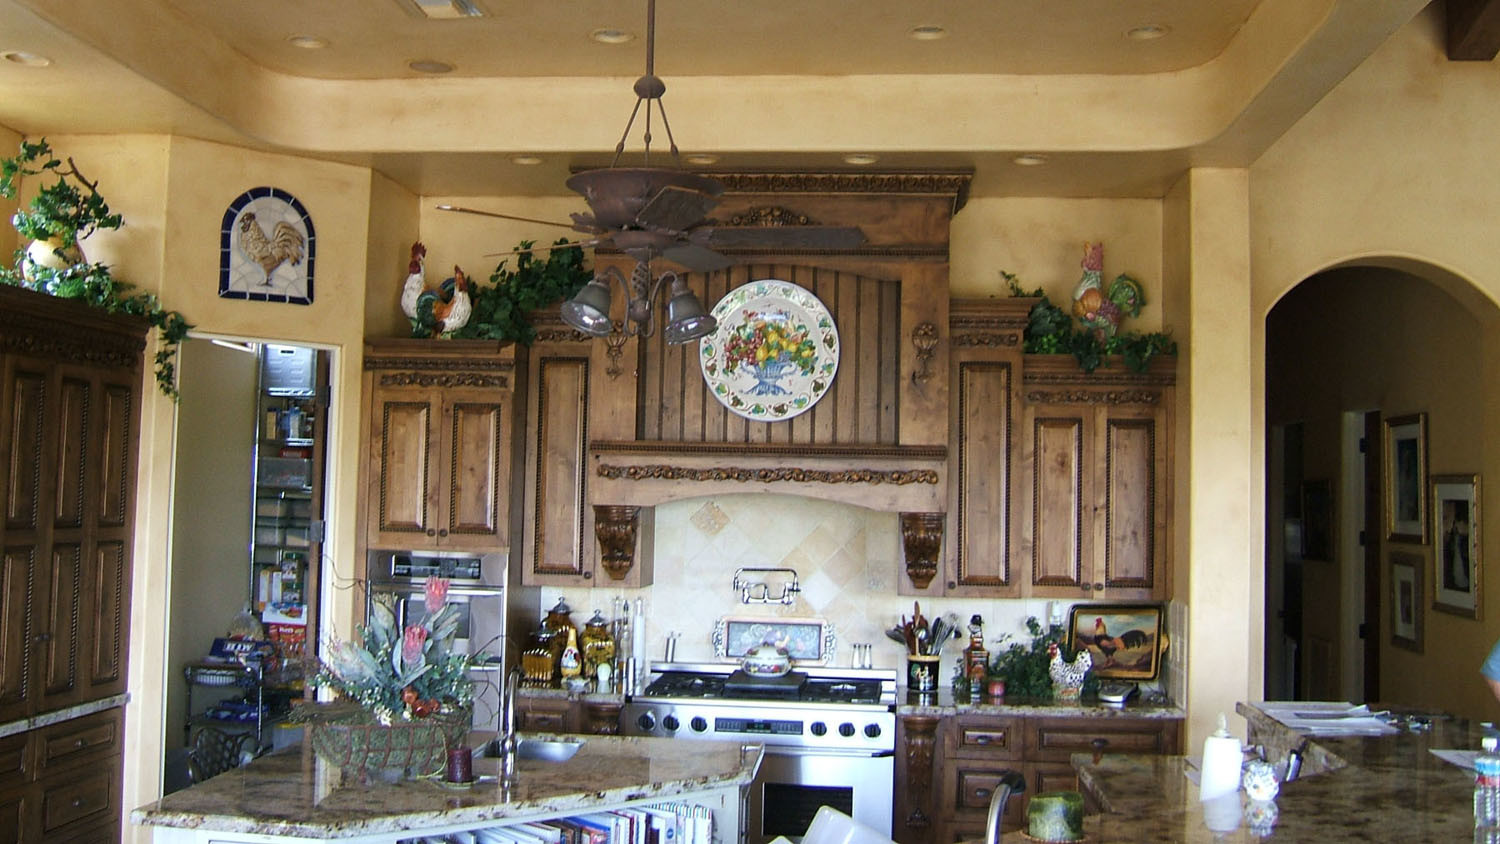 1000 Images About Kitchens On Pinterest Dream Kitchens Photo Galleries And Kitchen Cabinets